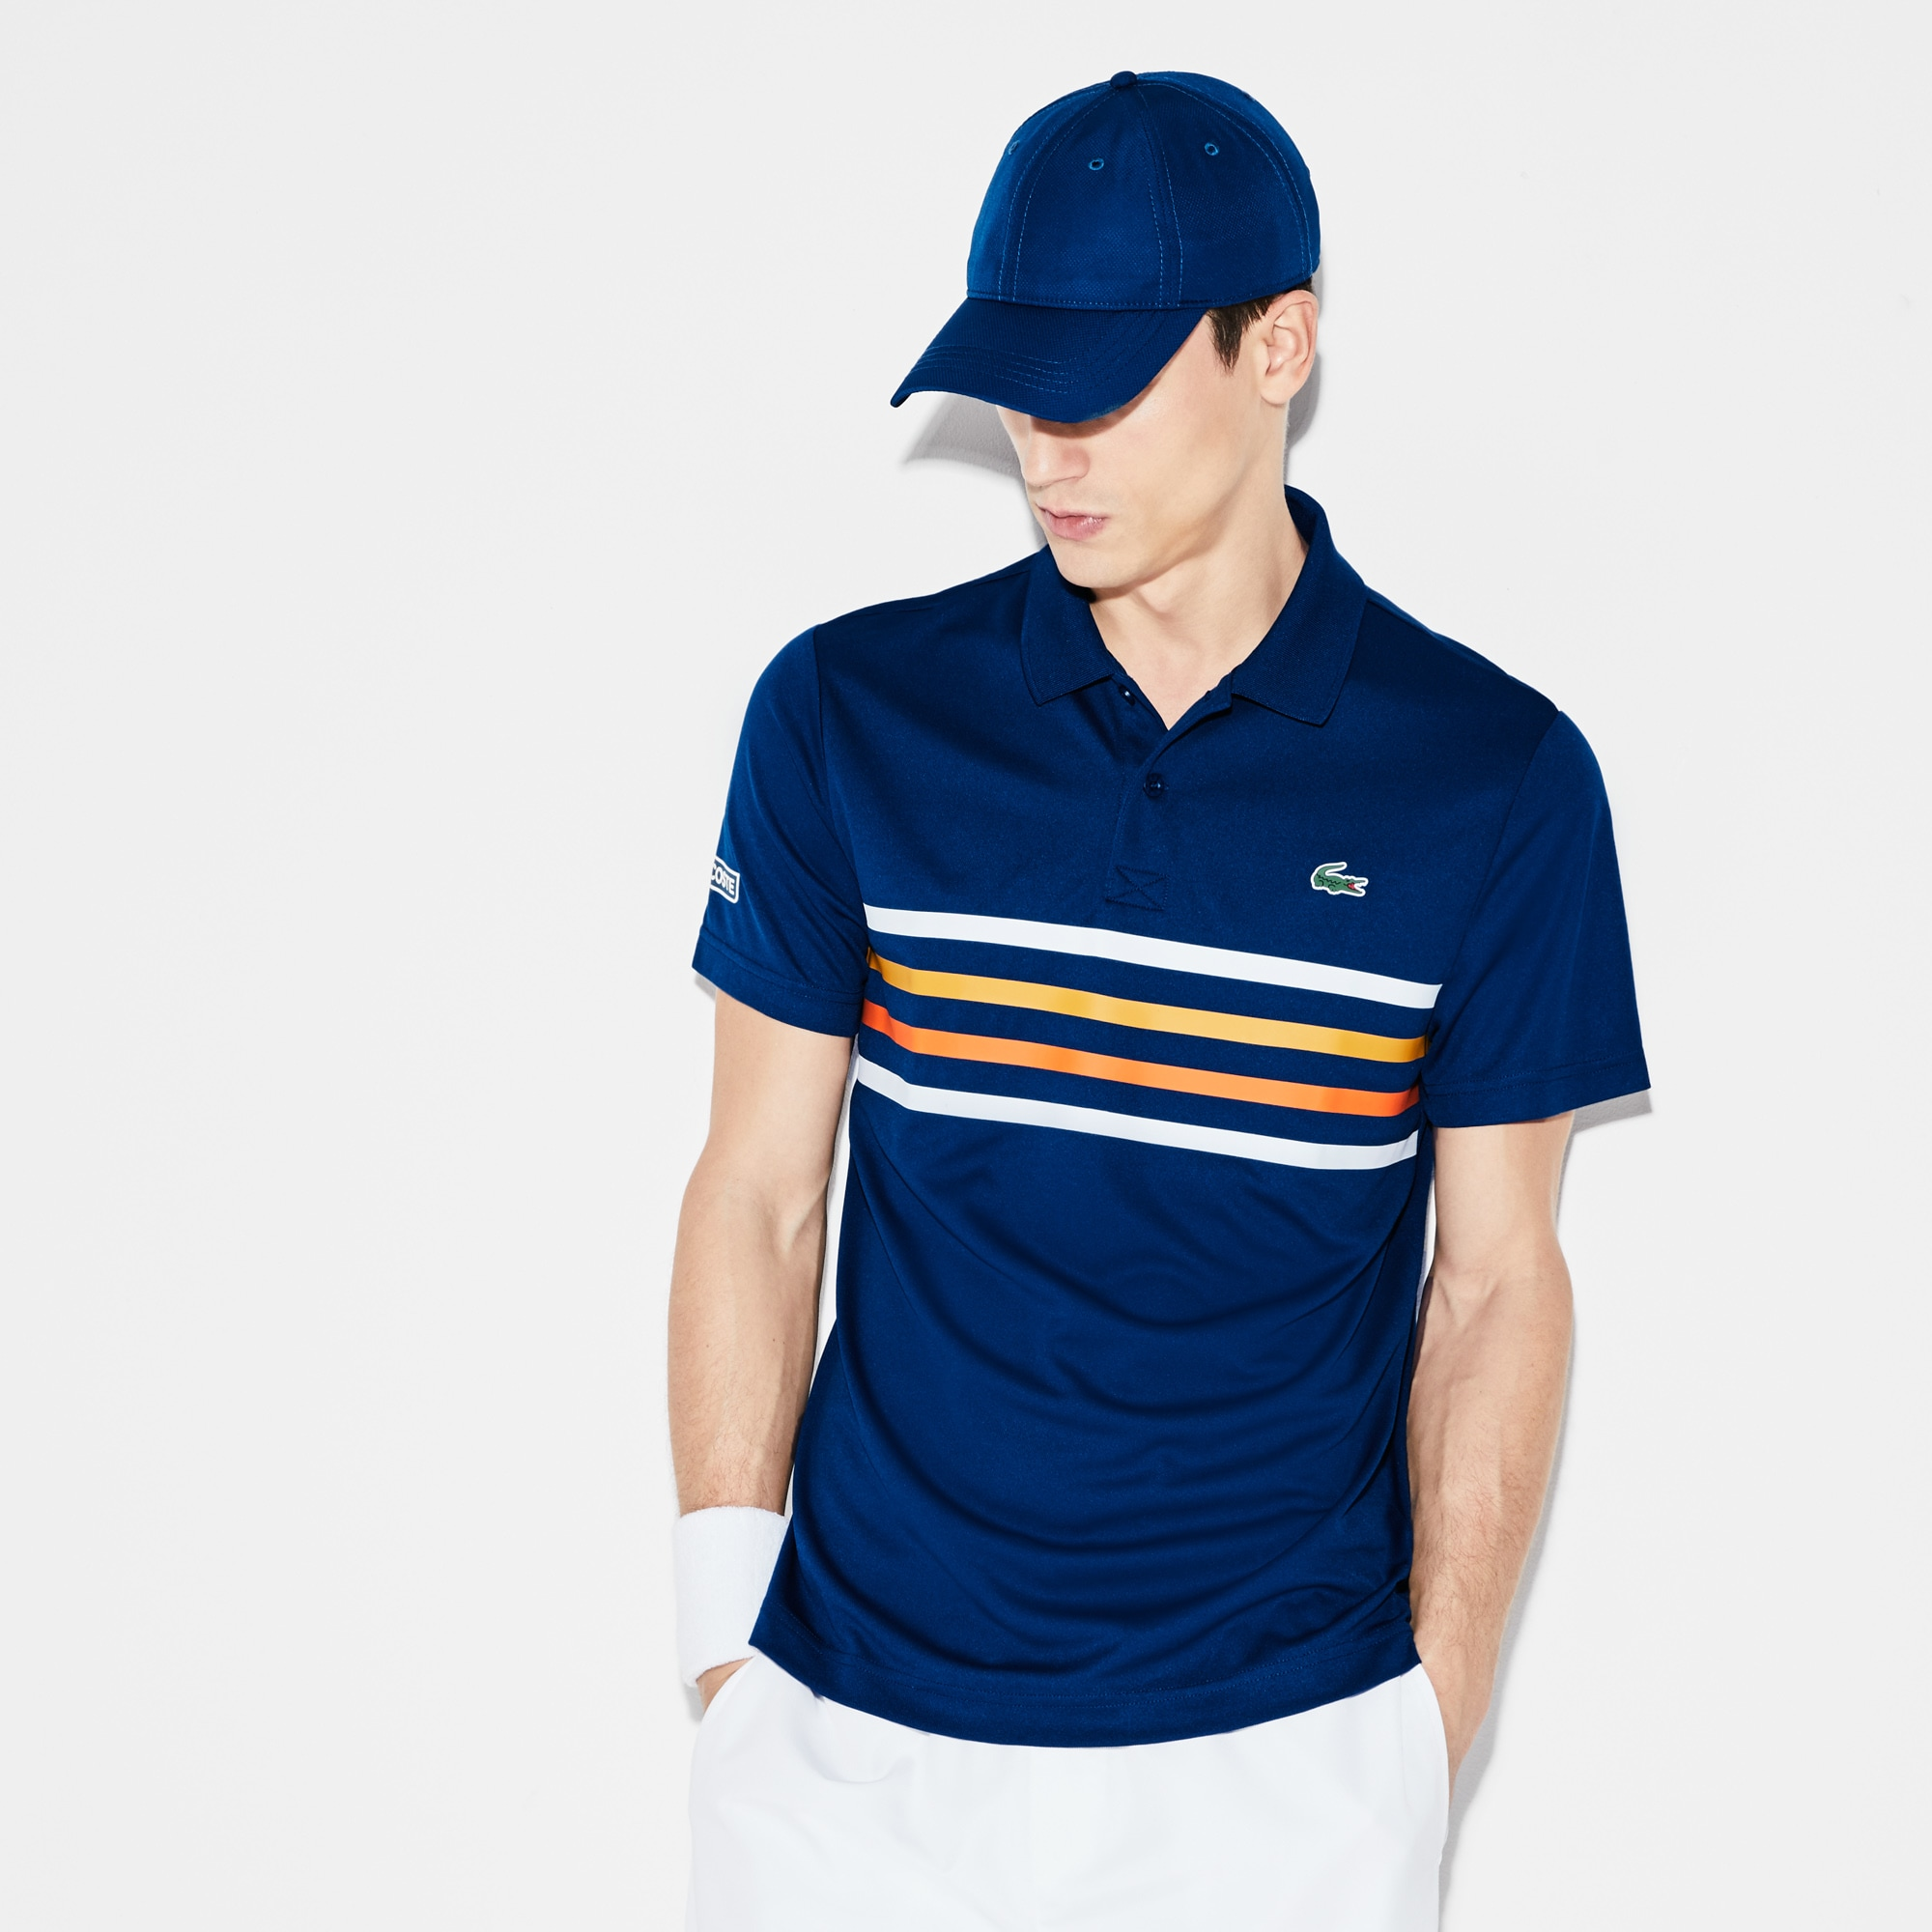 Polo Tennis Lacoste SPORT in piqué tecnico con fasce colorate